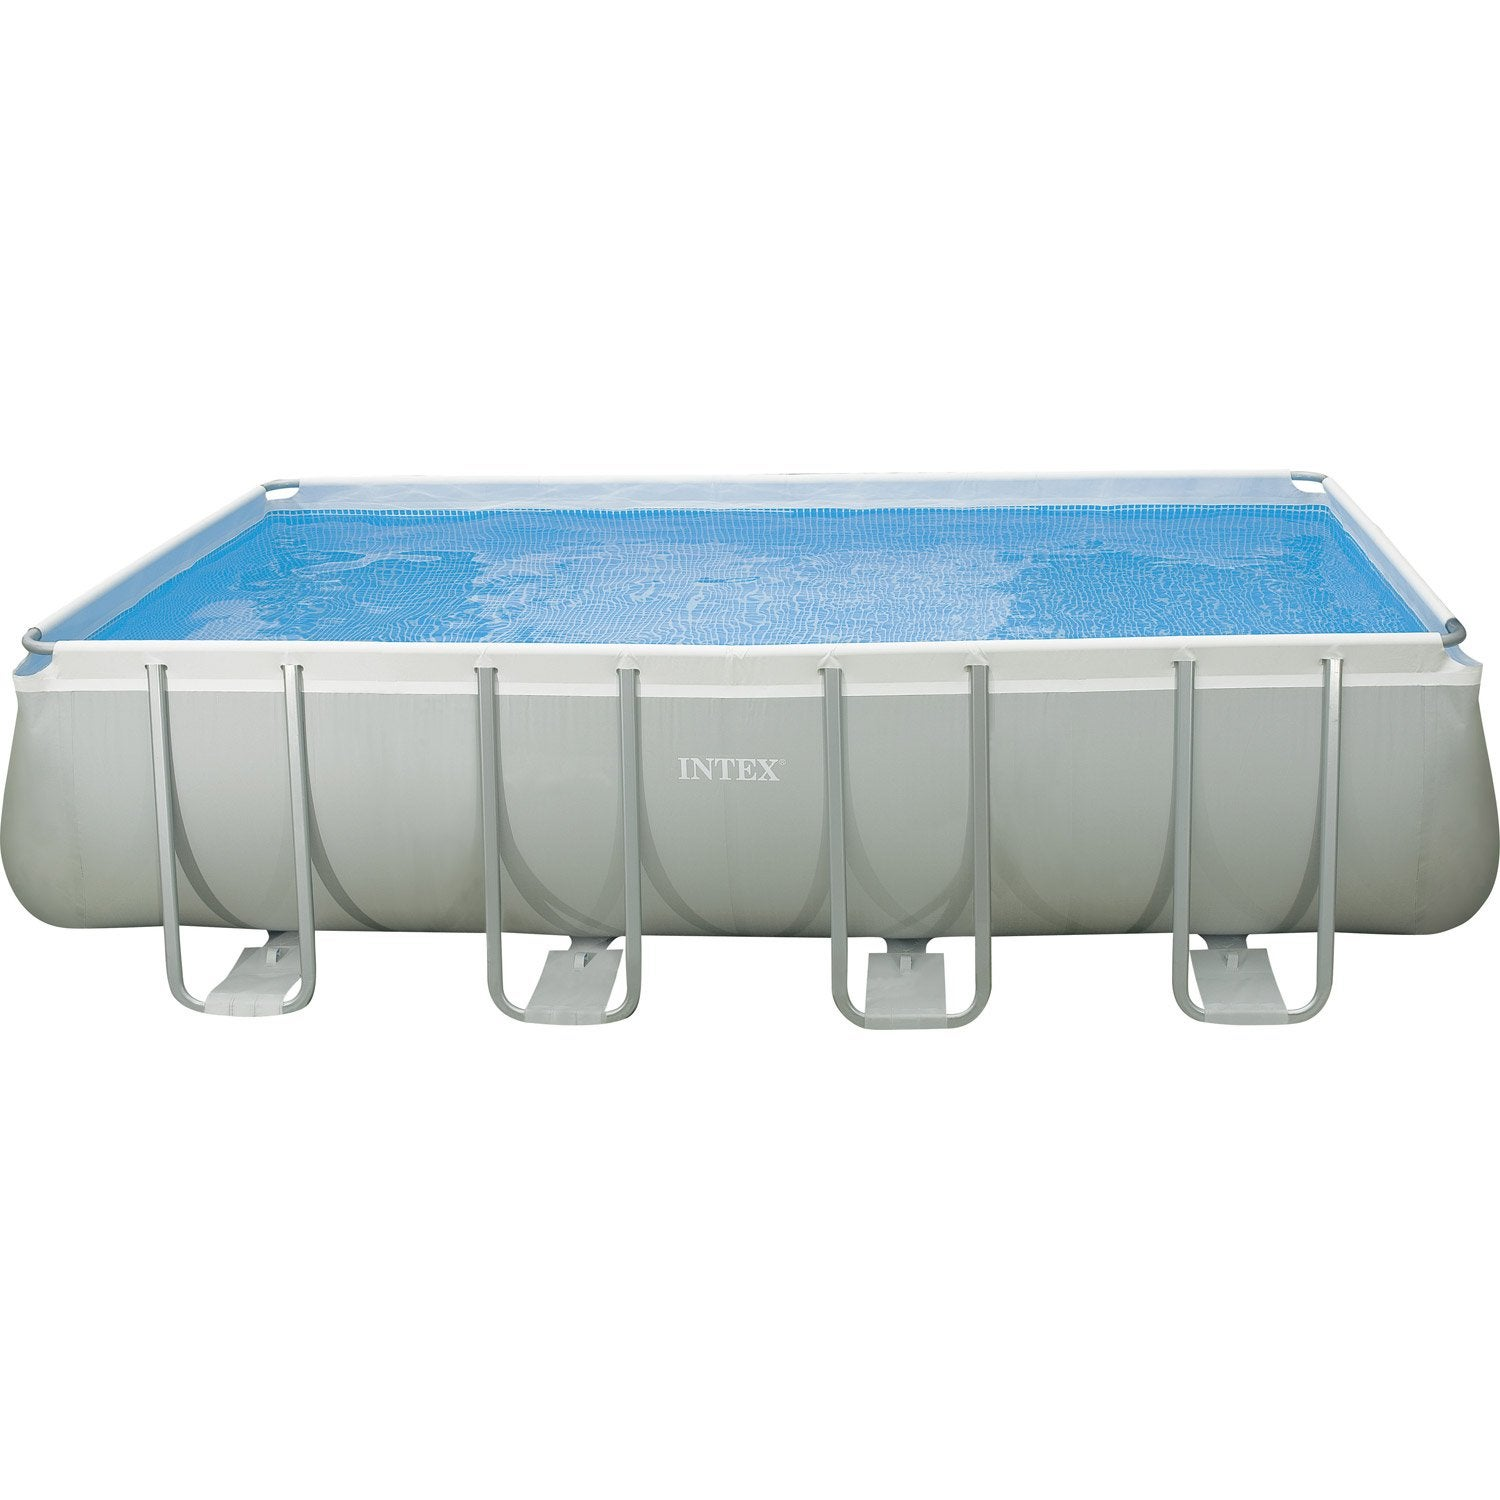 Piscine hors sol autoportante tubulaire intex l x l for Robot de piscine hors sol